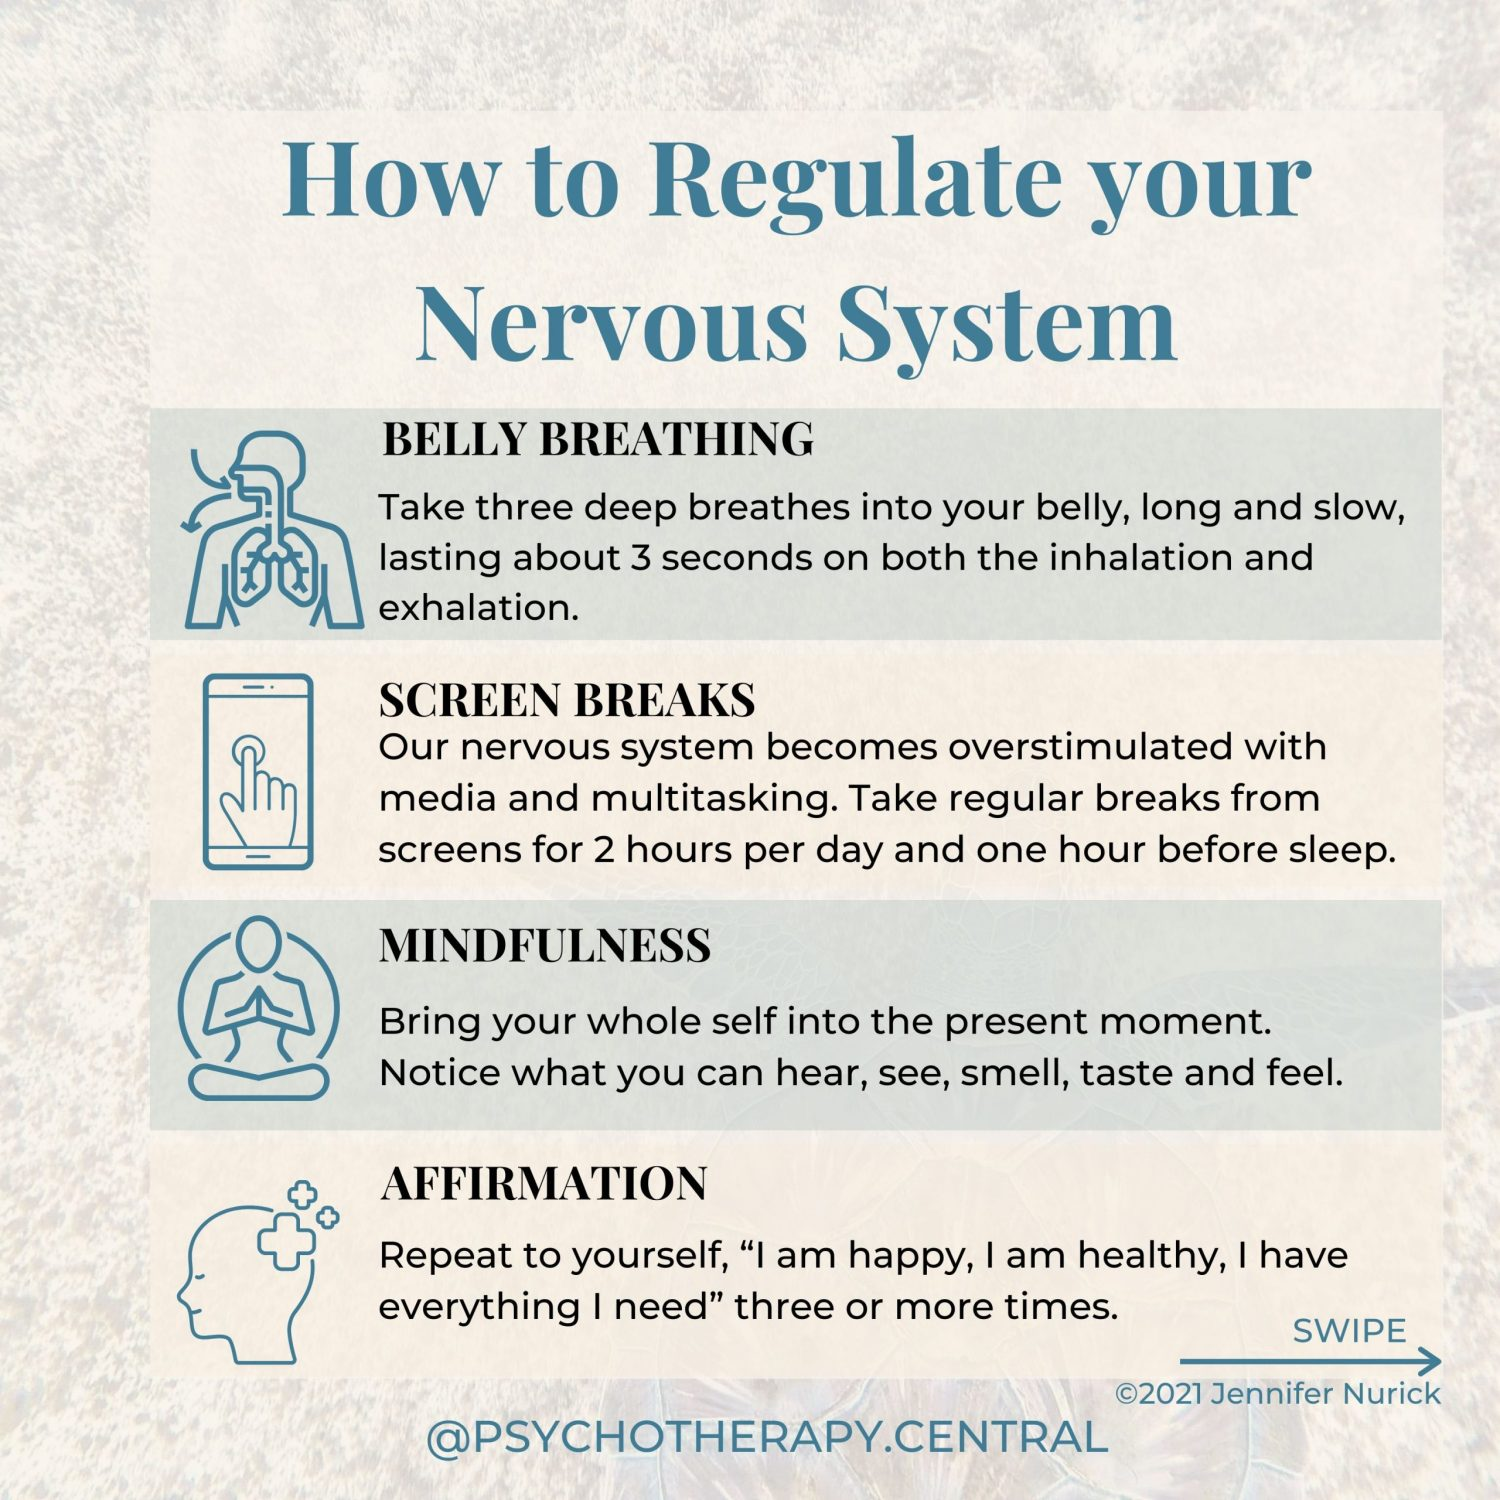 """How to Regulate your Nervous System BELLY BREATHING – Take three deep breathes into your belly, long and slow, lasting about 3 seconds on both the inhalation and exhalation. SCREEN BREAK – Our nervous system becomes overstimulated with media and multitasking. Take regular breaks from screens, perhaps for 2 hours per day and one hour before sleep. MINDFULNESS – Bring your whole self into the present moment. Notice what you can hear, see, smell, taste and feel. AFFIRMATION – Repeat to yourself, """"I am happy, I am healthy, I have everything I need"""" three or more times. INNER CHILD – Take time to connect with your Inner Child and talk to them. Find out how they are and what they need to feel safe and calm. NATURE AND SUNSHINE – Nature is a natural regulator, go somewhere in nature and notice everything around you, the colours, sounds, and feelings. Imagine you can begin to breathe with nature in this place—breath in the serotonin-producing sunshine. CO-REGULATION – Regulating your nervous system with someone else. You can do this by sharing with someone you love and enjoying something together. MAKE TIME FOR JOY – Do something you love; gardening, baking, painting, reading, singing or dancing. This tells your nervous system that you are safe."""